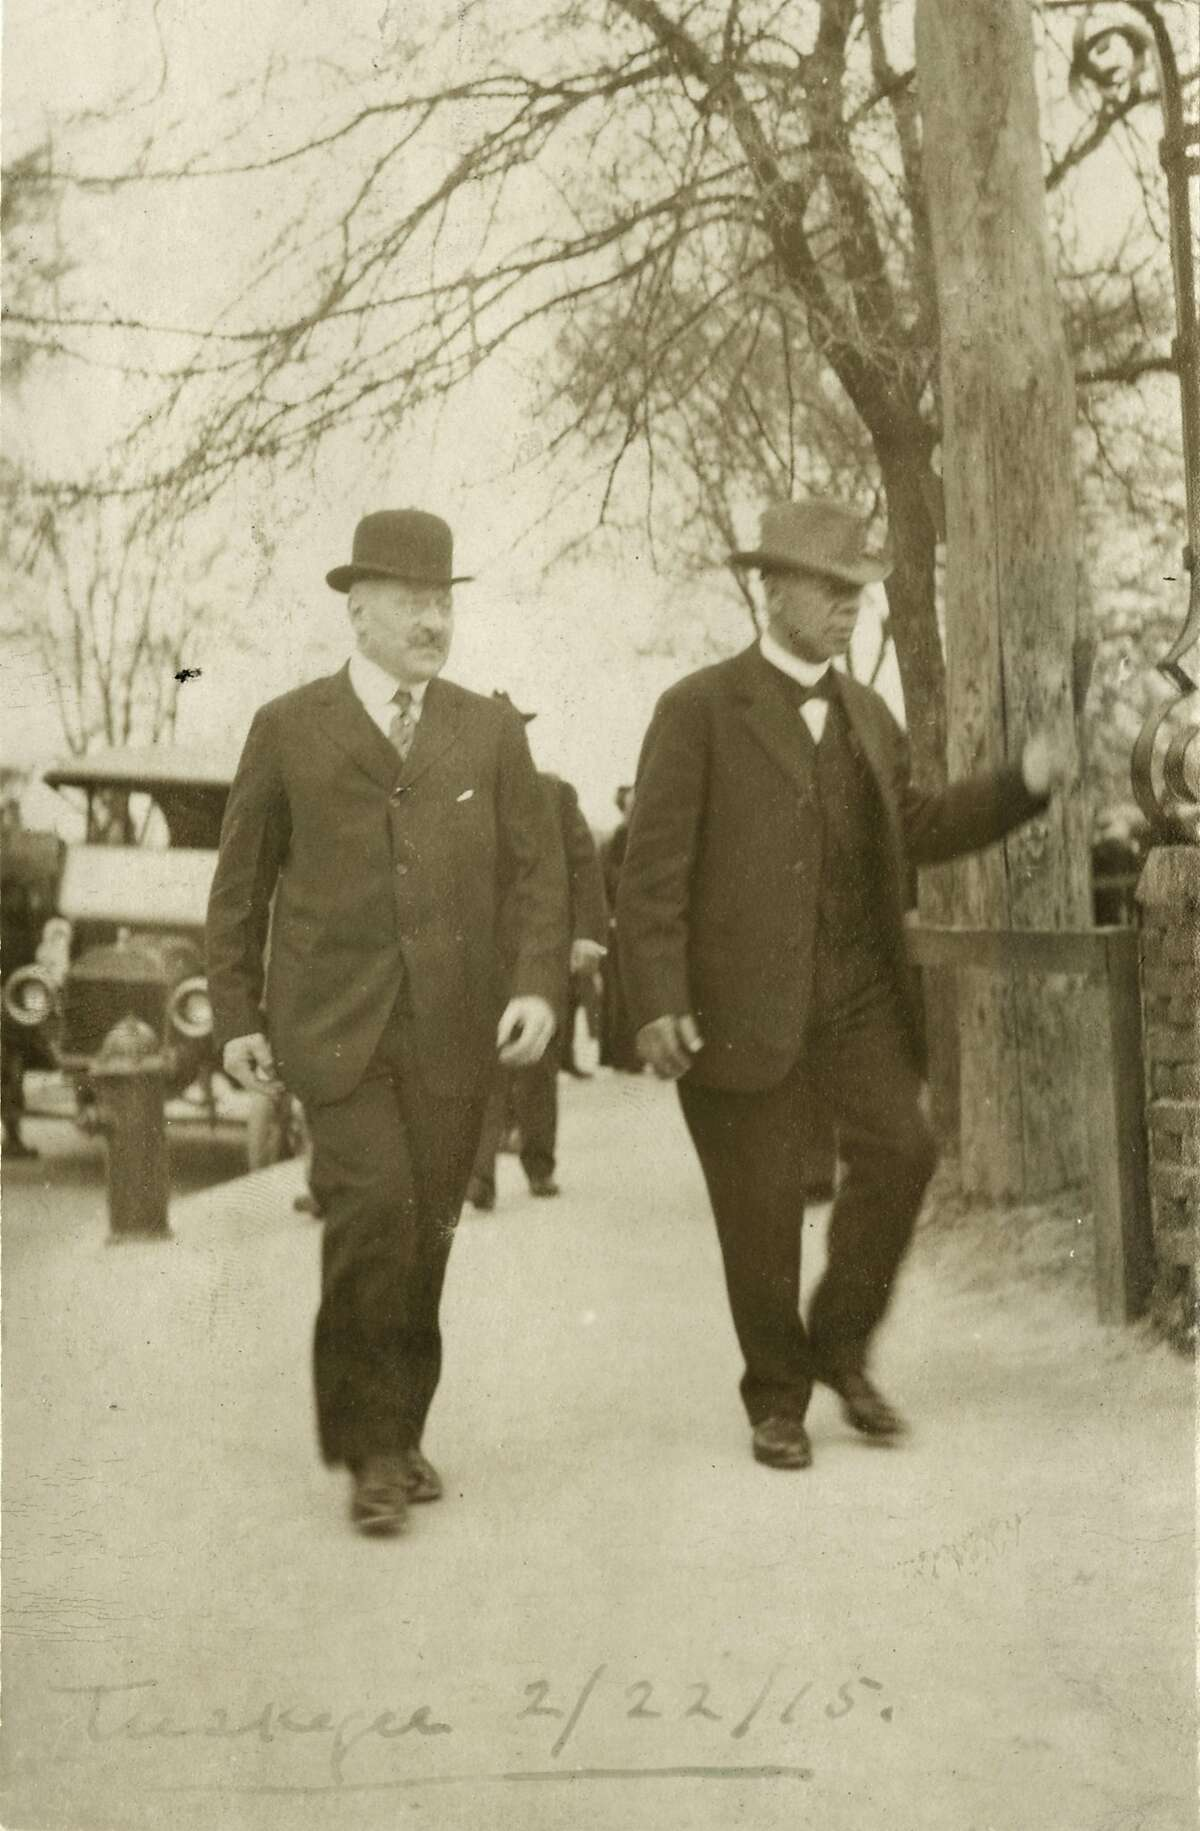 Julius Rosenwald and Booker T. Washington, Tuskegee Institute, 1915. (Photo courtesy Special Collections Research Center, University of Chicago Library/TNS)